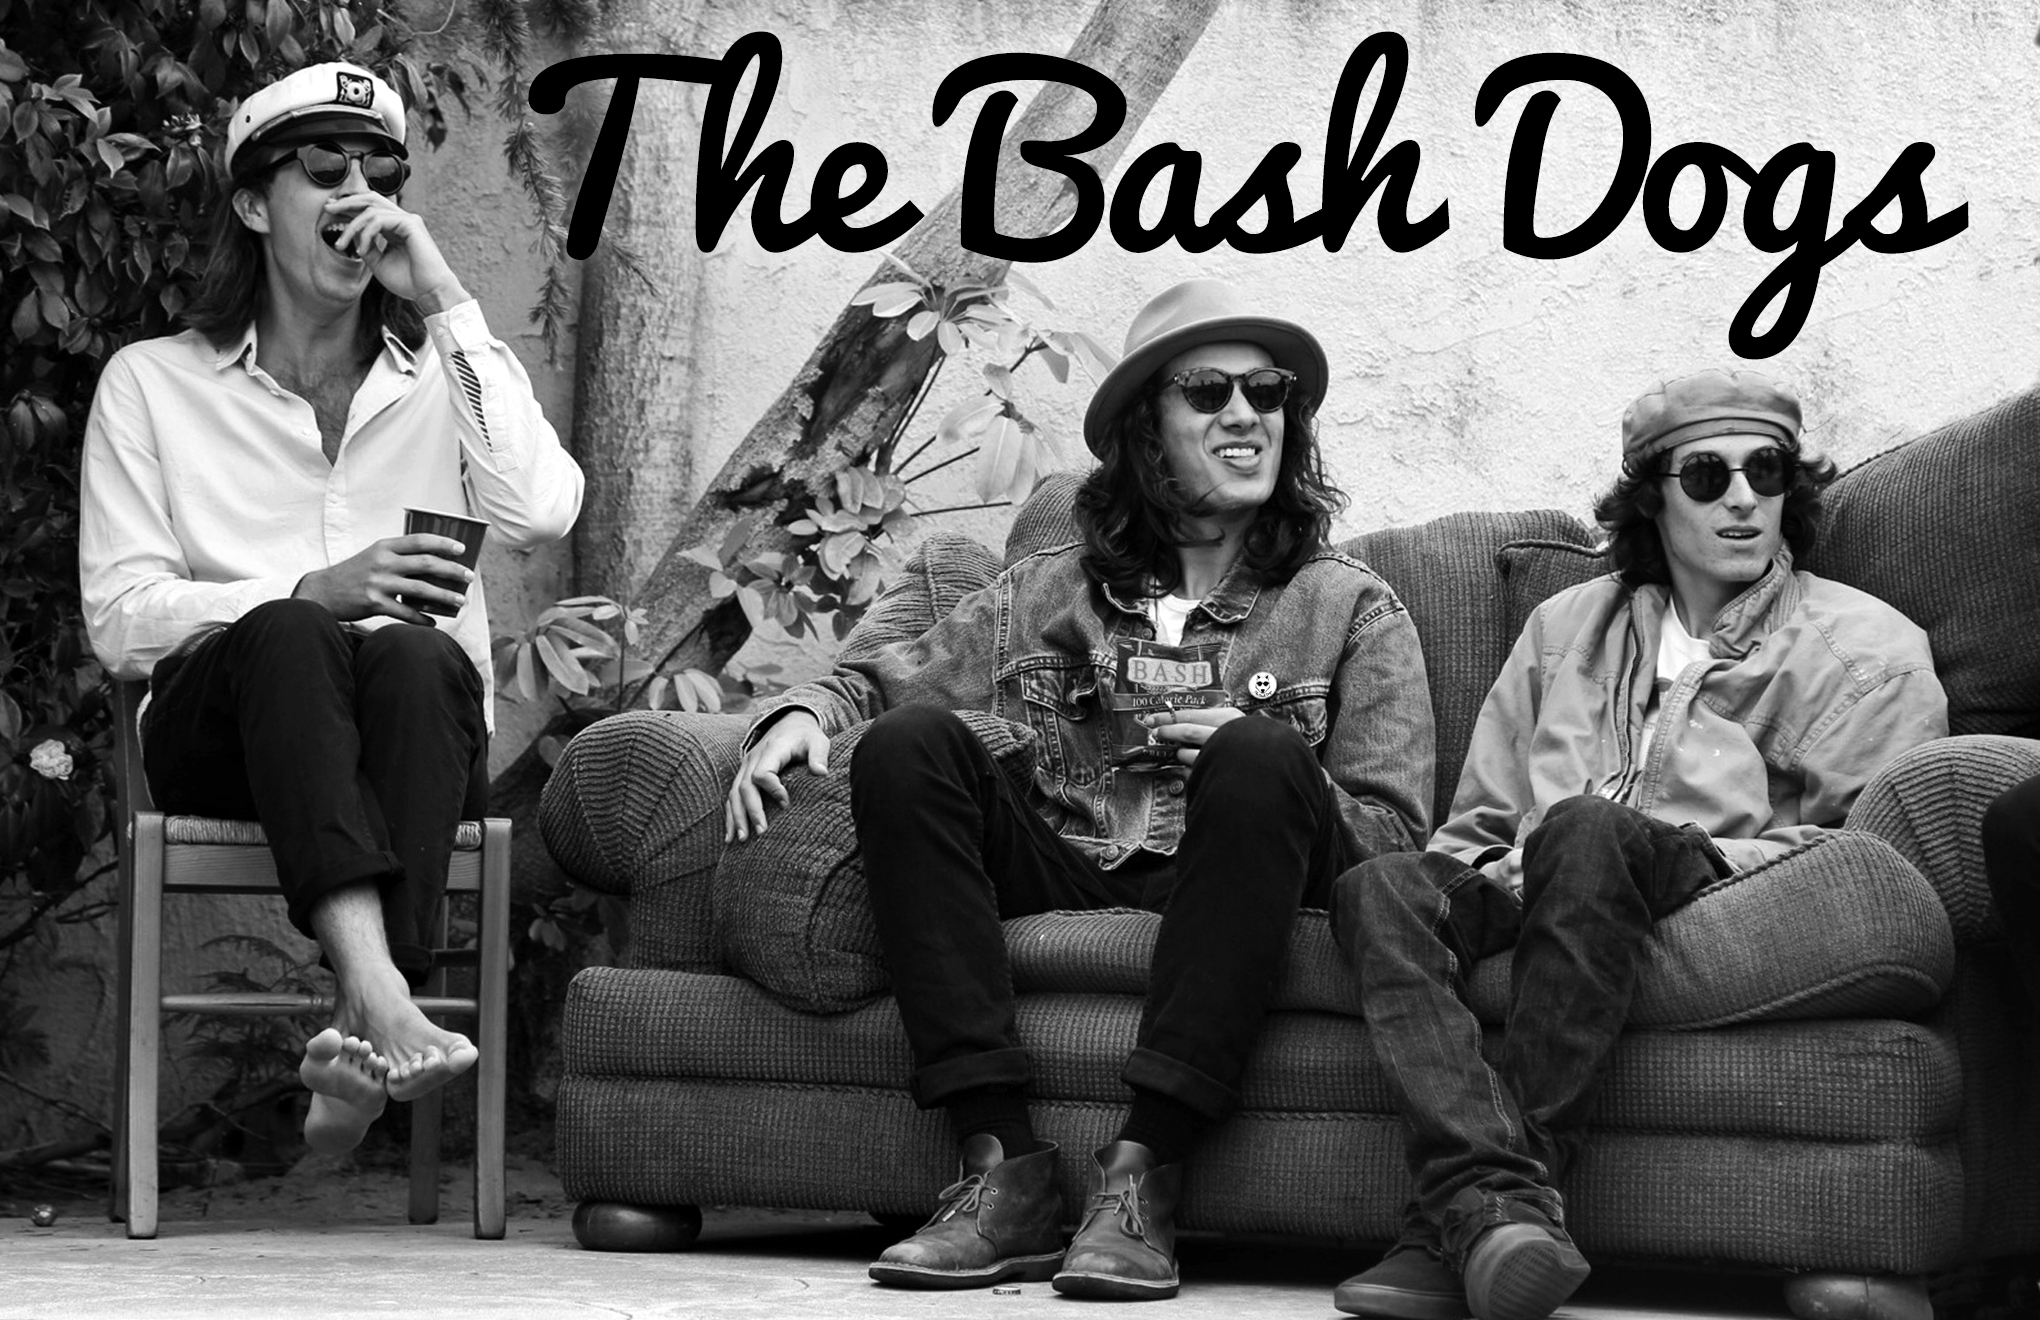 The Bash Dogs Poster 11x17.jpg